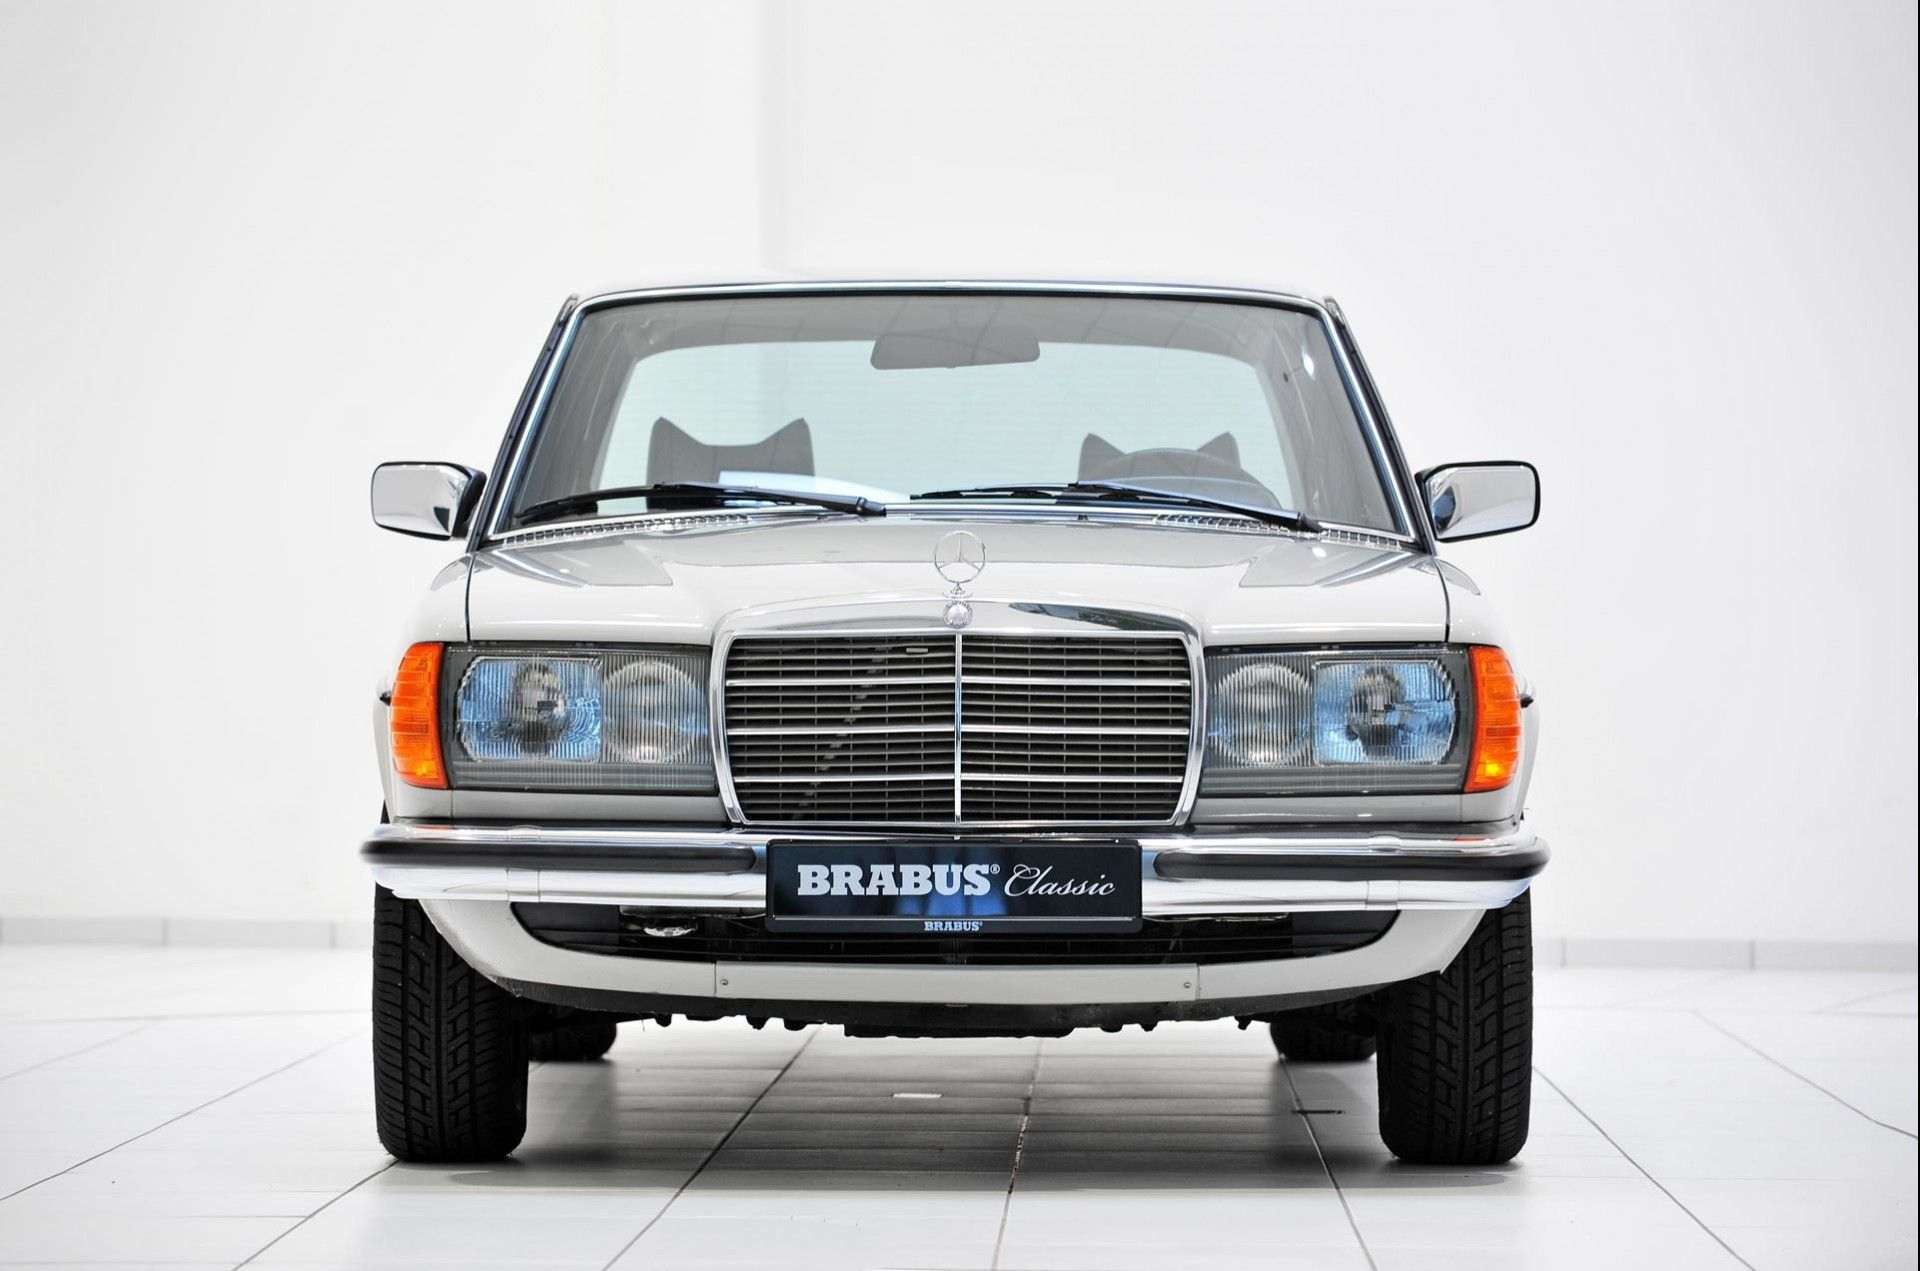 mercedes w123 280e 1978 sprzedany gie da klasyk w mercedes benz pinterest benz. Black Bedroom Furniture Sets. Home Design Ideas